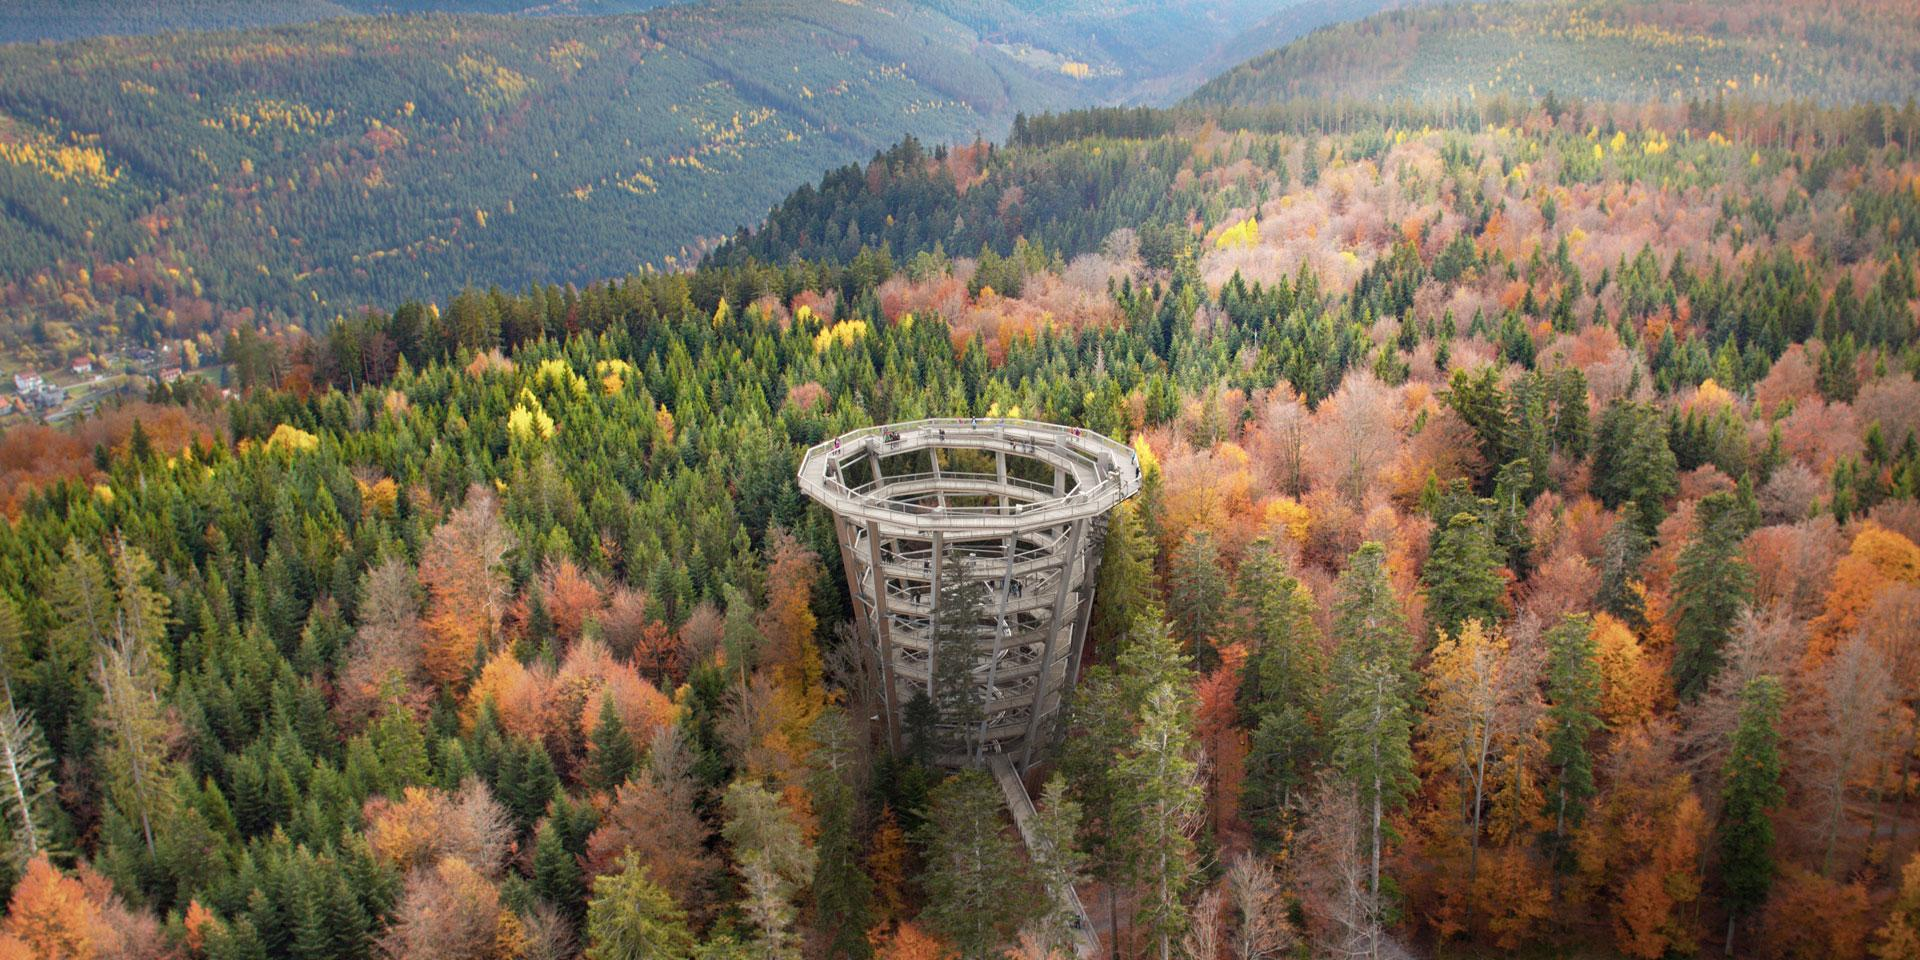 The observation tower at the Treetop Walk Black Forest